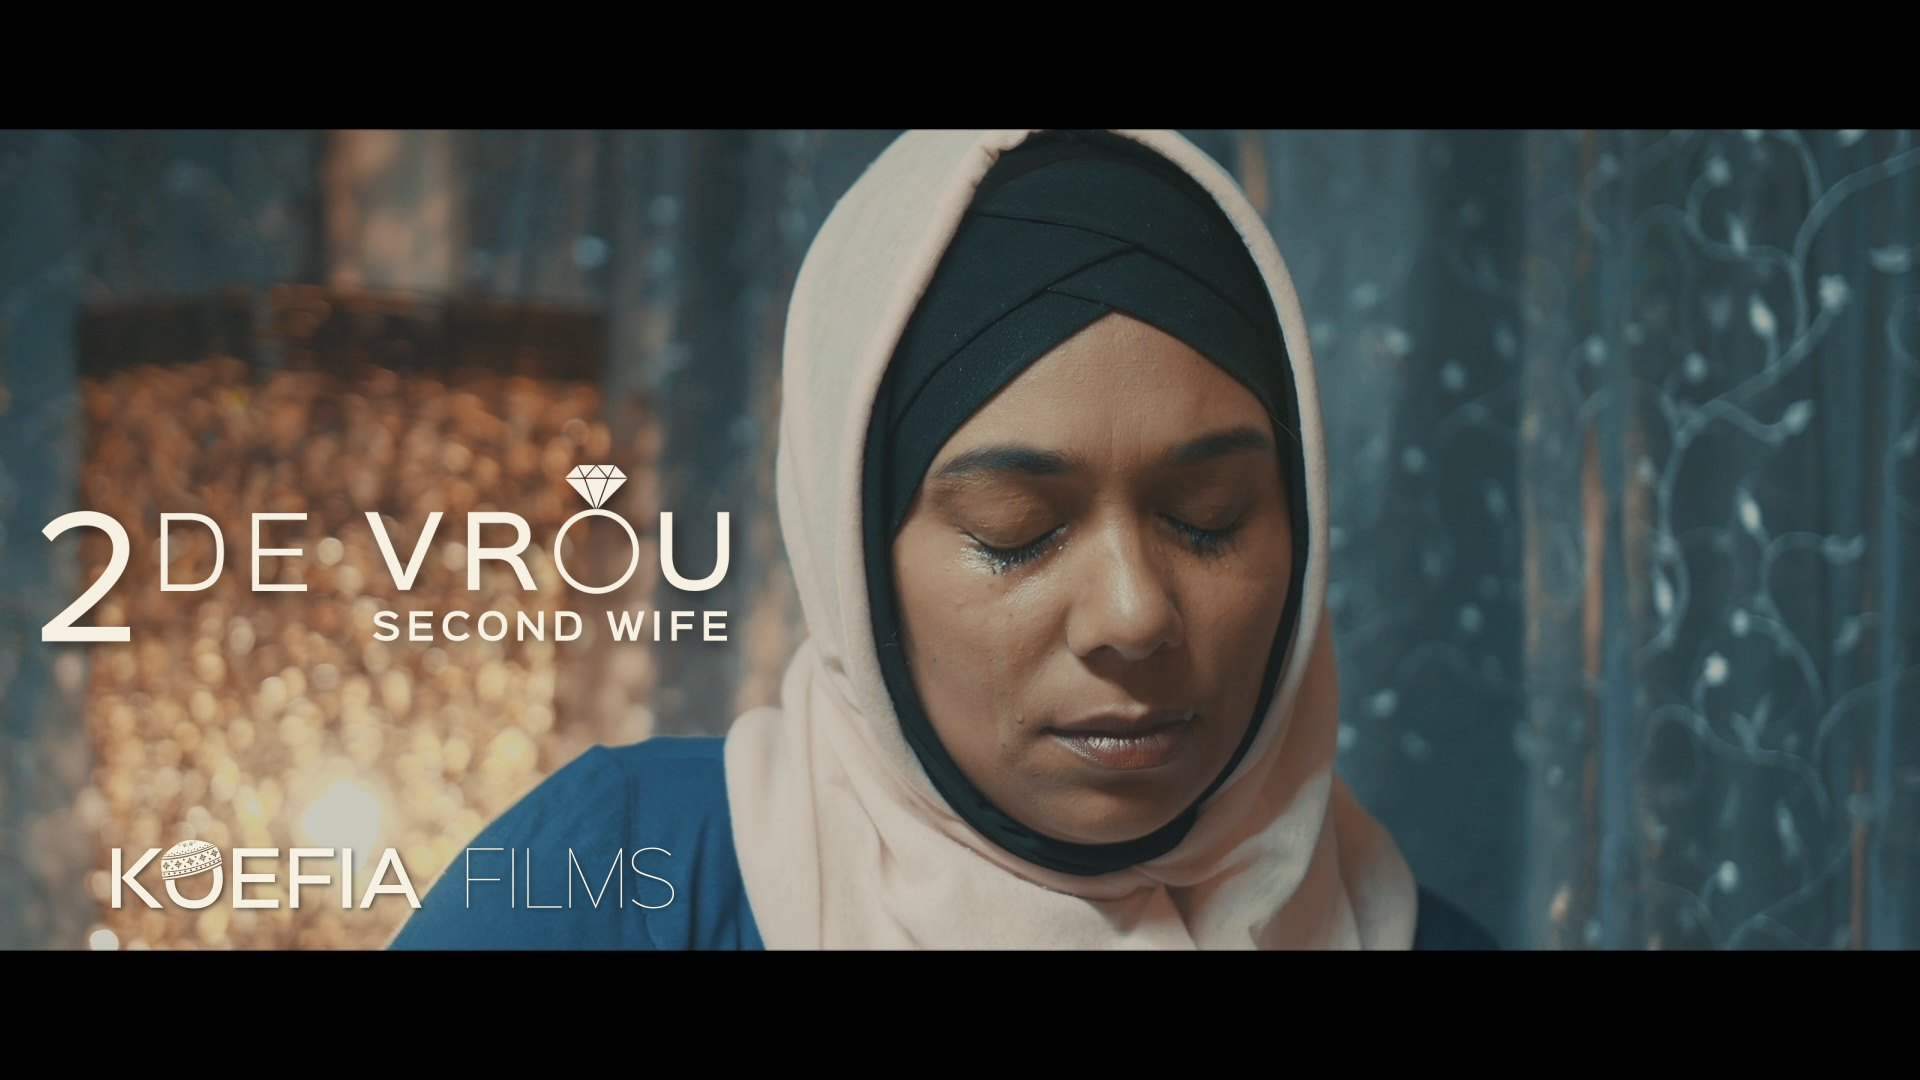 Facebook series 2De Vrou spotlights issues of polygamy in the Muslim community